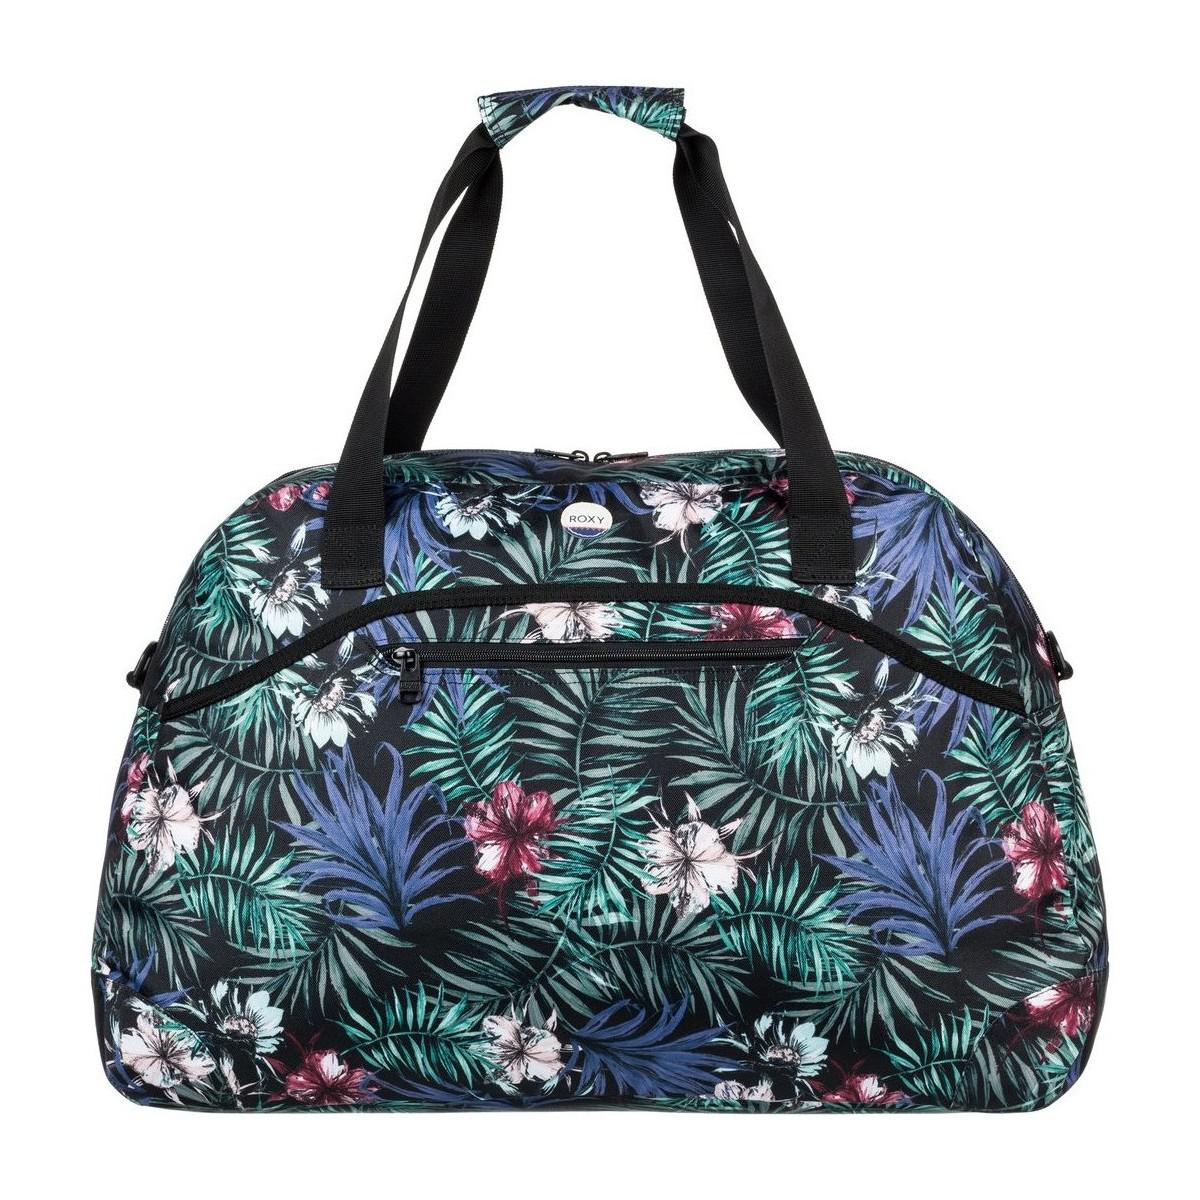 3f4b1346b7f31 Roxy Bolsa De Deporte Too Far 58l - Bolsa De Viaje Women s Sports ...